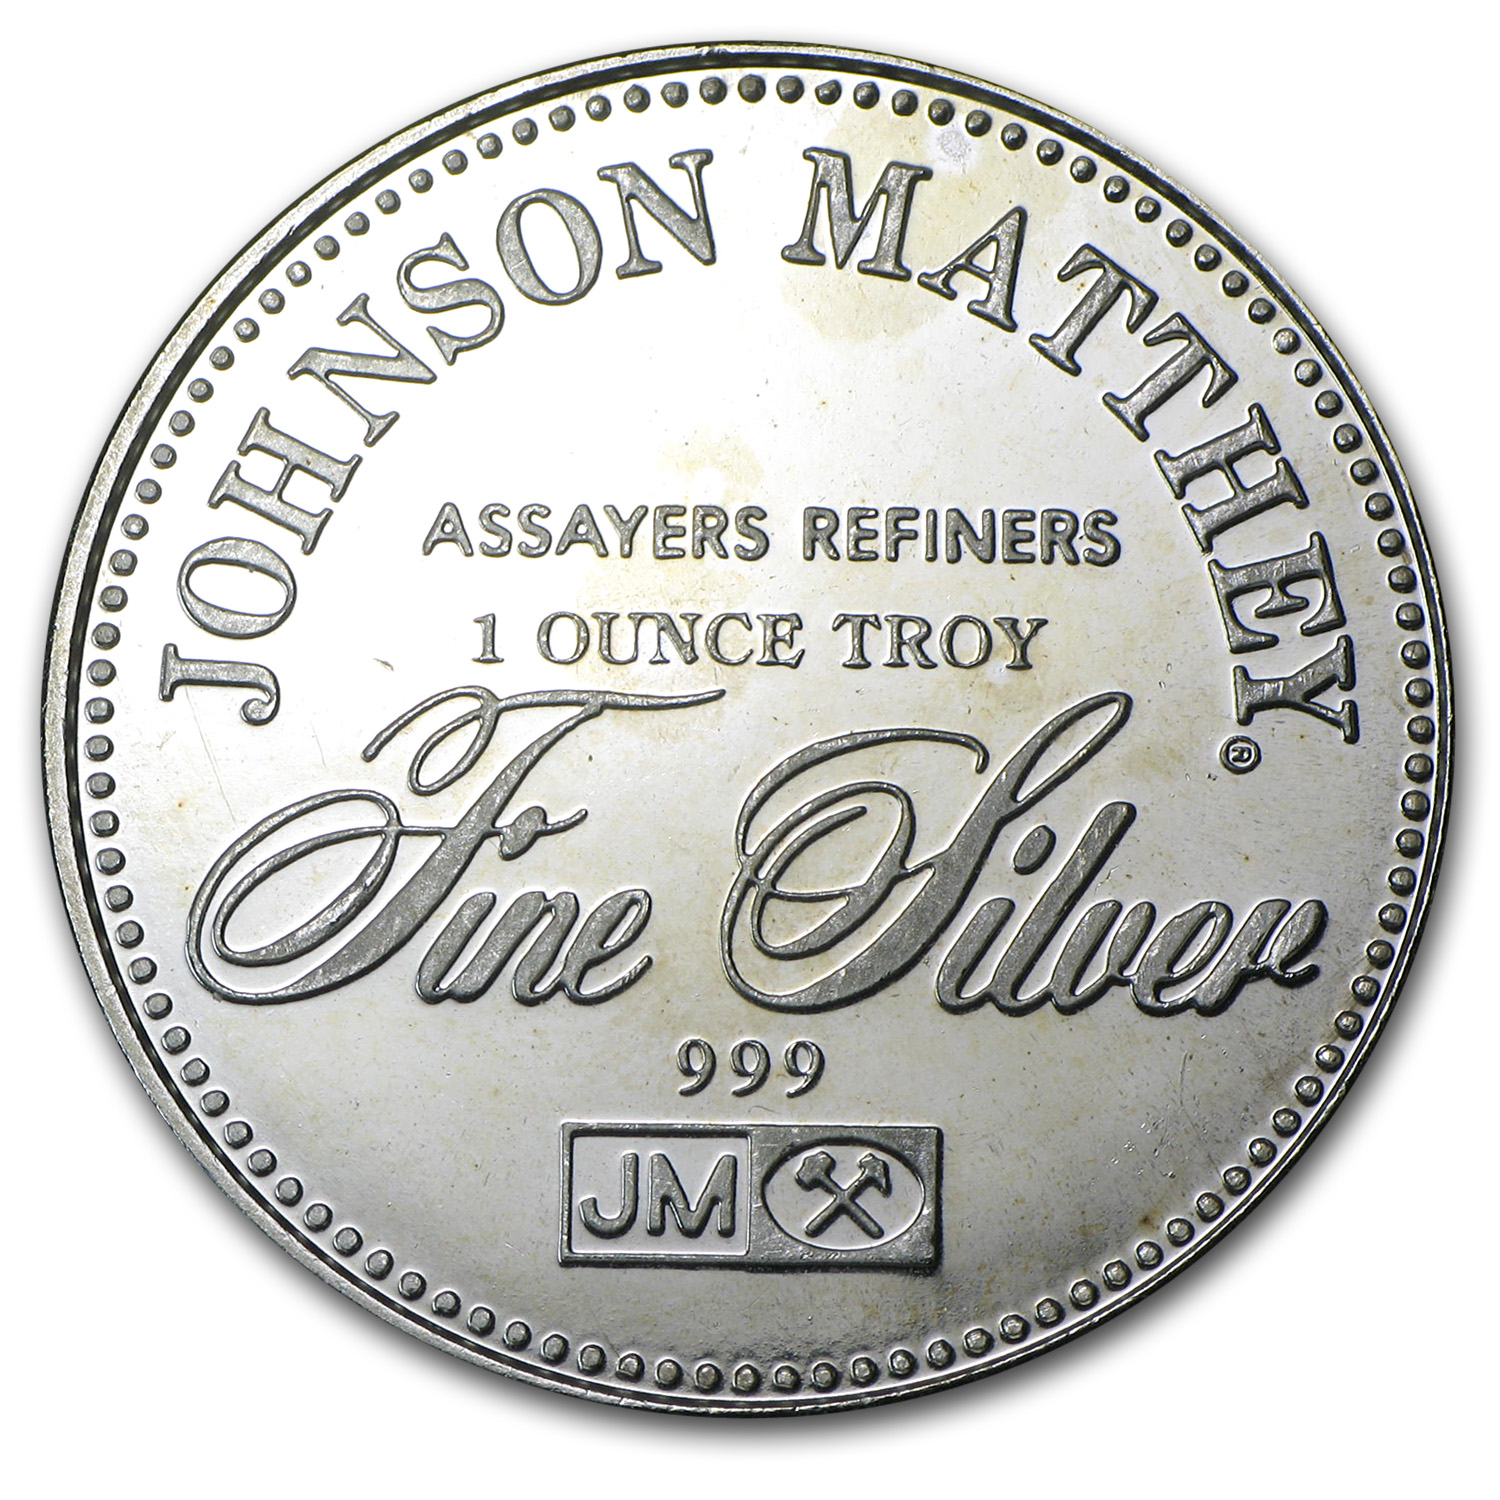 1 oz Silver Rounds - Johnson Matthey (Sealed/Right to Bear Arms)